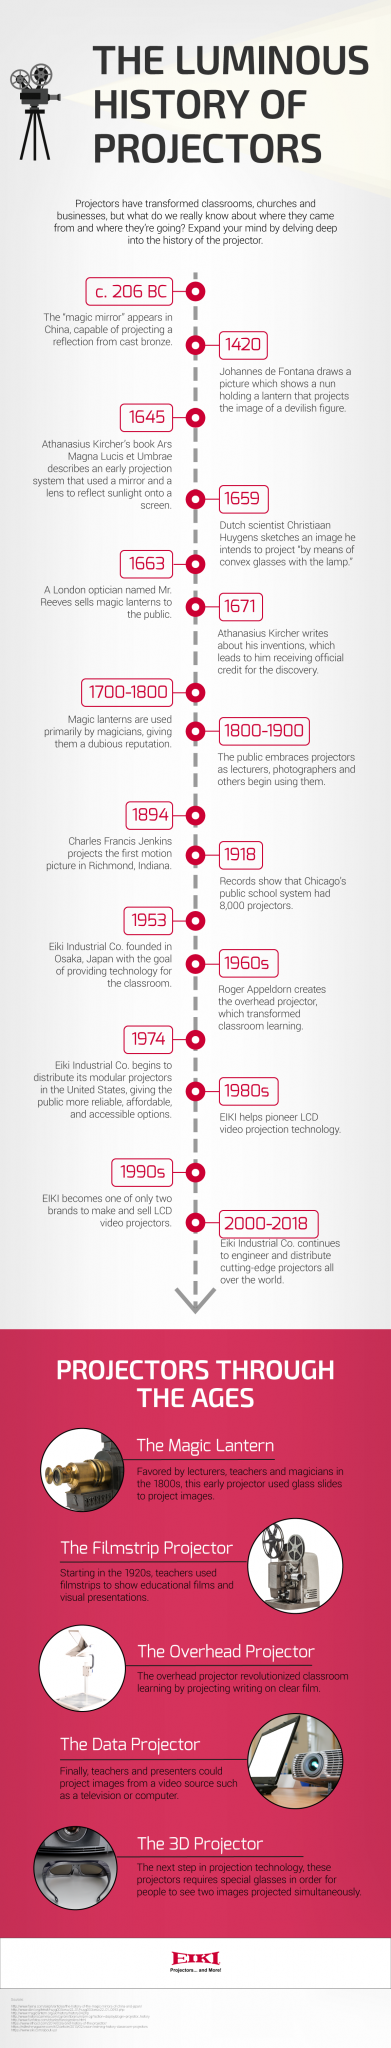 The Luminous History of Projectors Infographic